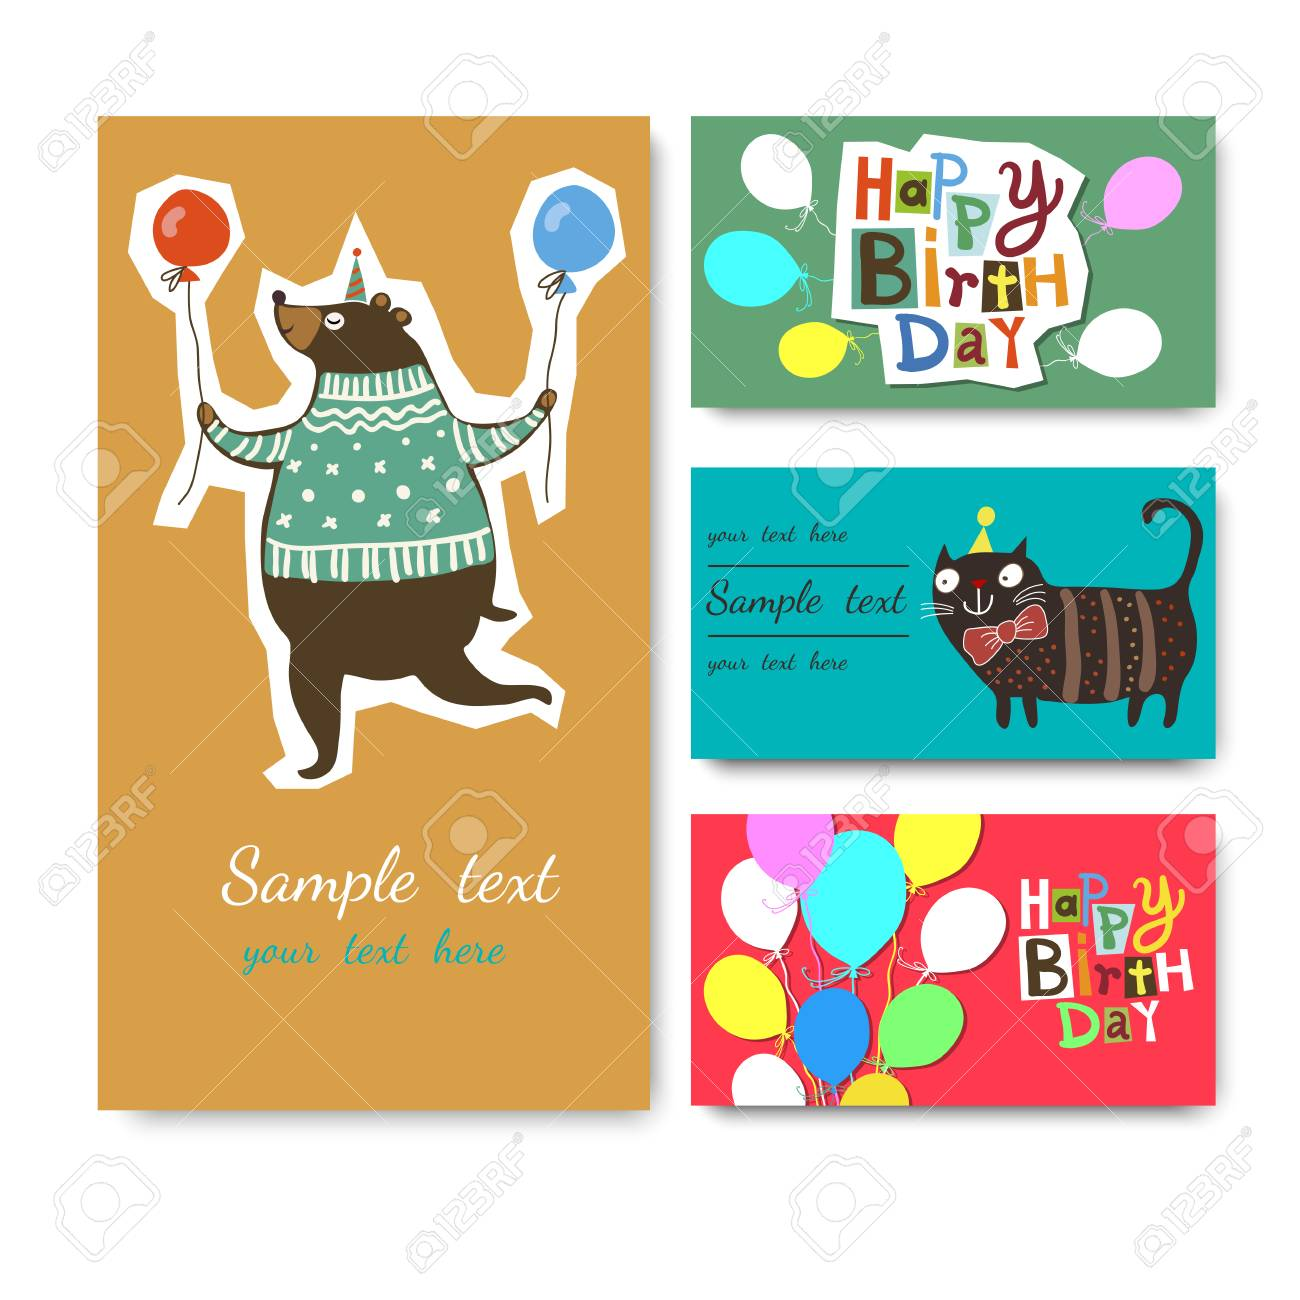 Vector Illustration Of A Happy Birthday Greeting Card Aphics